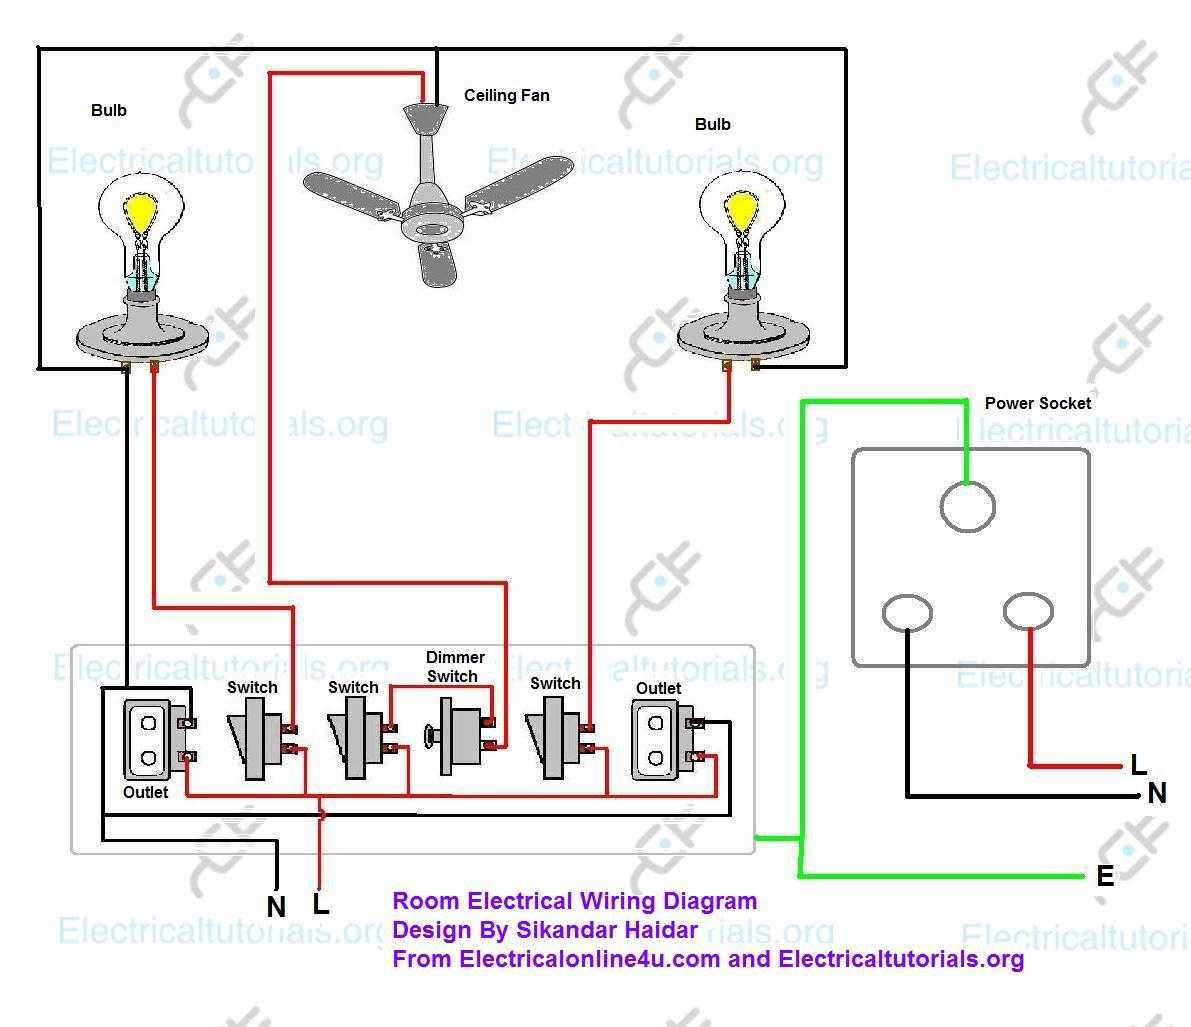 Electric Circuit Drawing at GetDrawings.com | Free for ... on